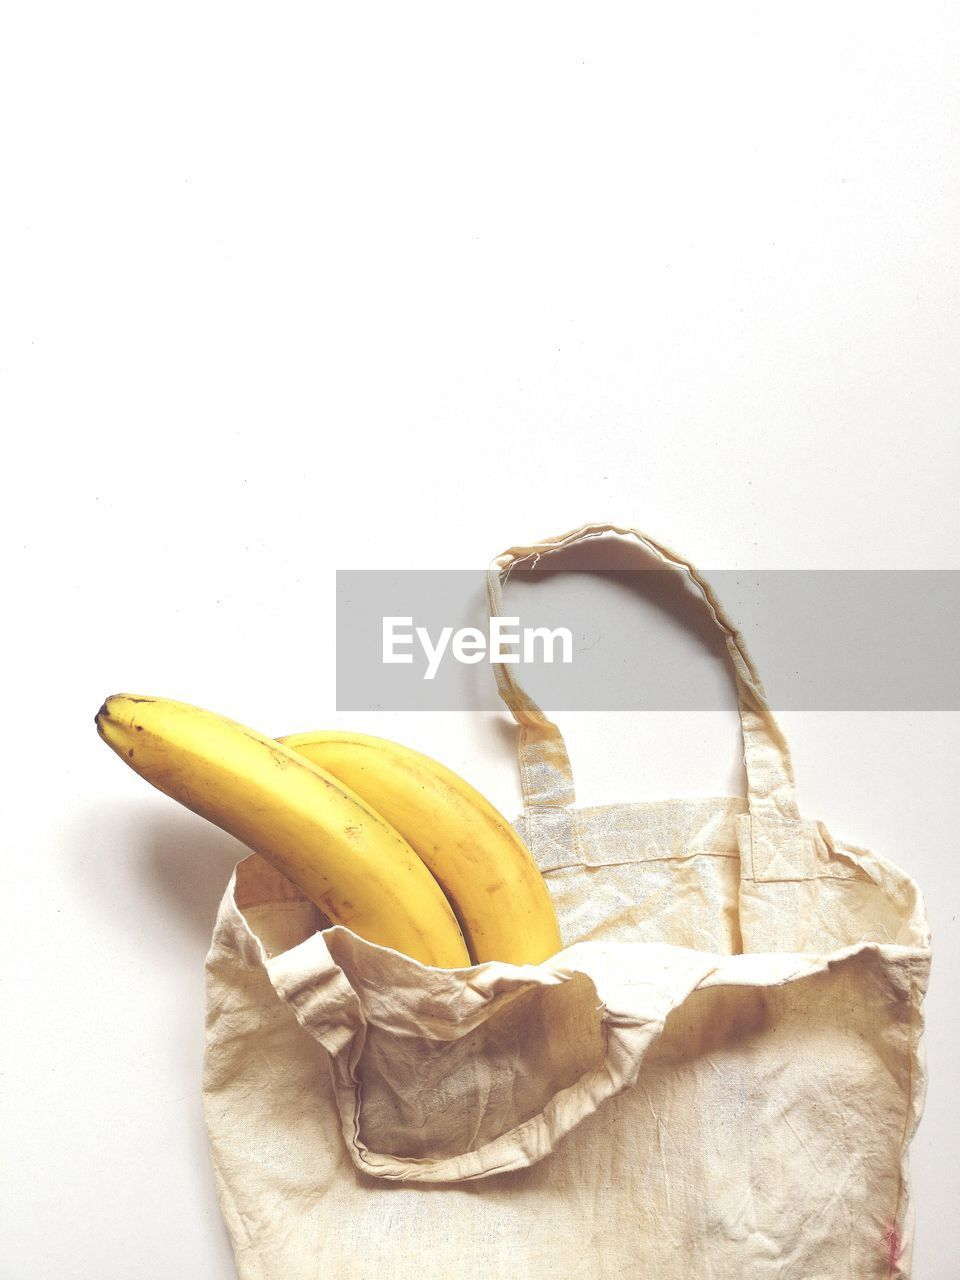 banana, white background, studio shot, healthy eating, indoors, fruit, still life, food, wellbeing, food and drink, copy space, yellow, freshness, no people, close-up, banana peel, group of objects, two objects, single object, peel